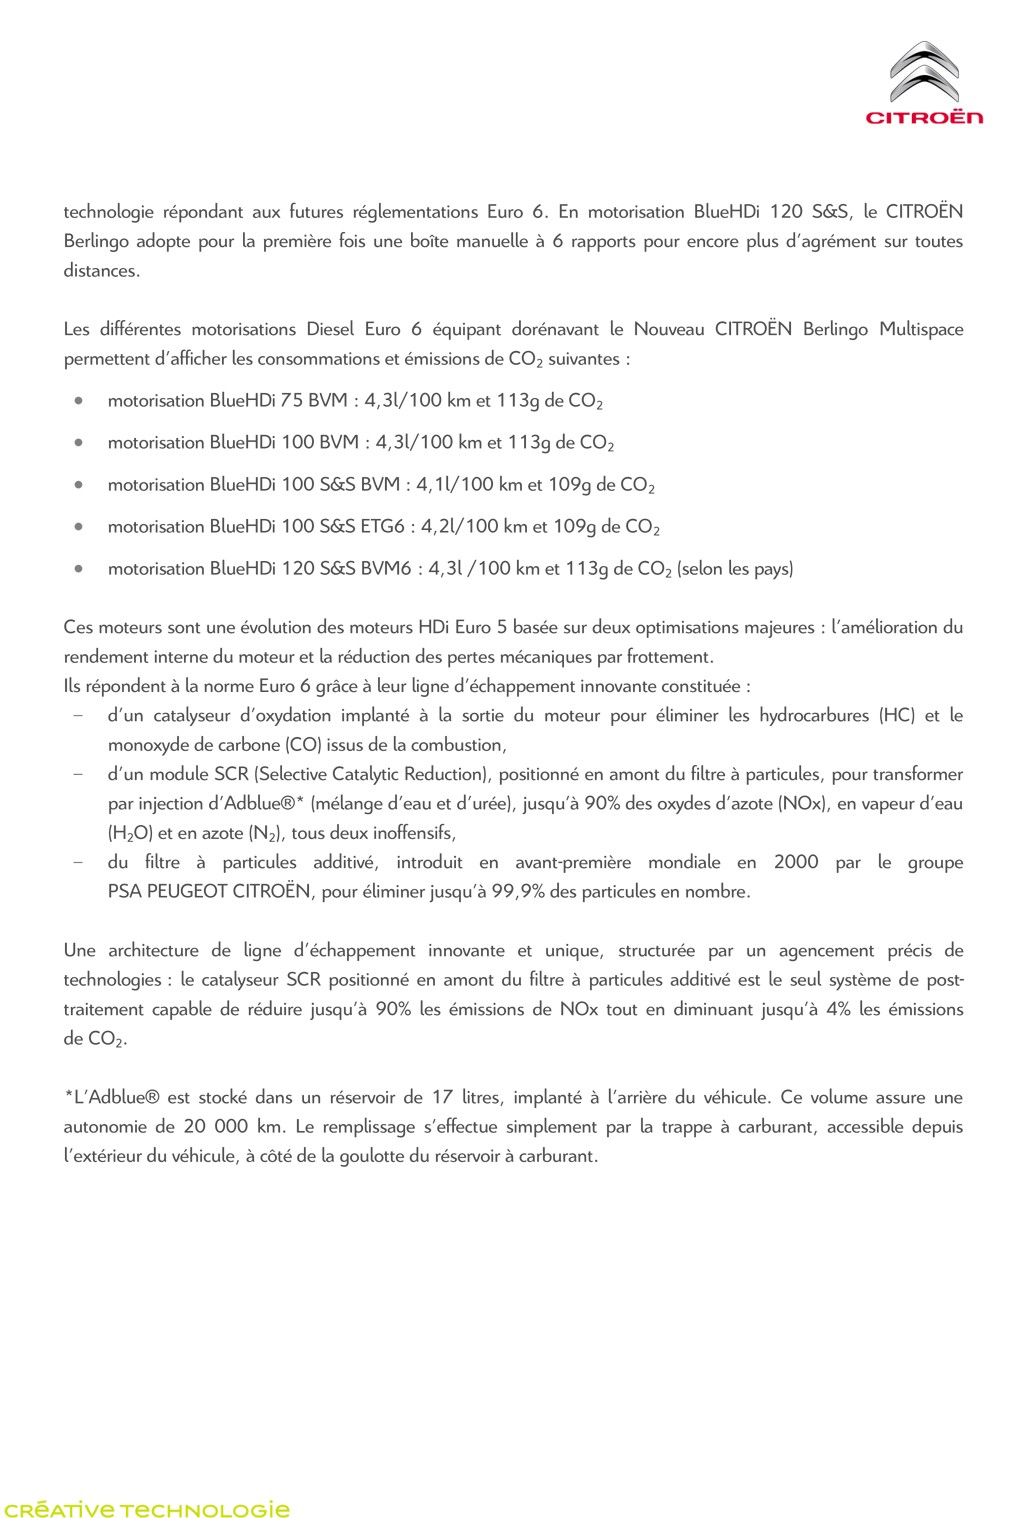 [SUJET OFFICIEL] Citroën Berlingo II phase III  - Page 2 Fr_dp_15